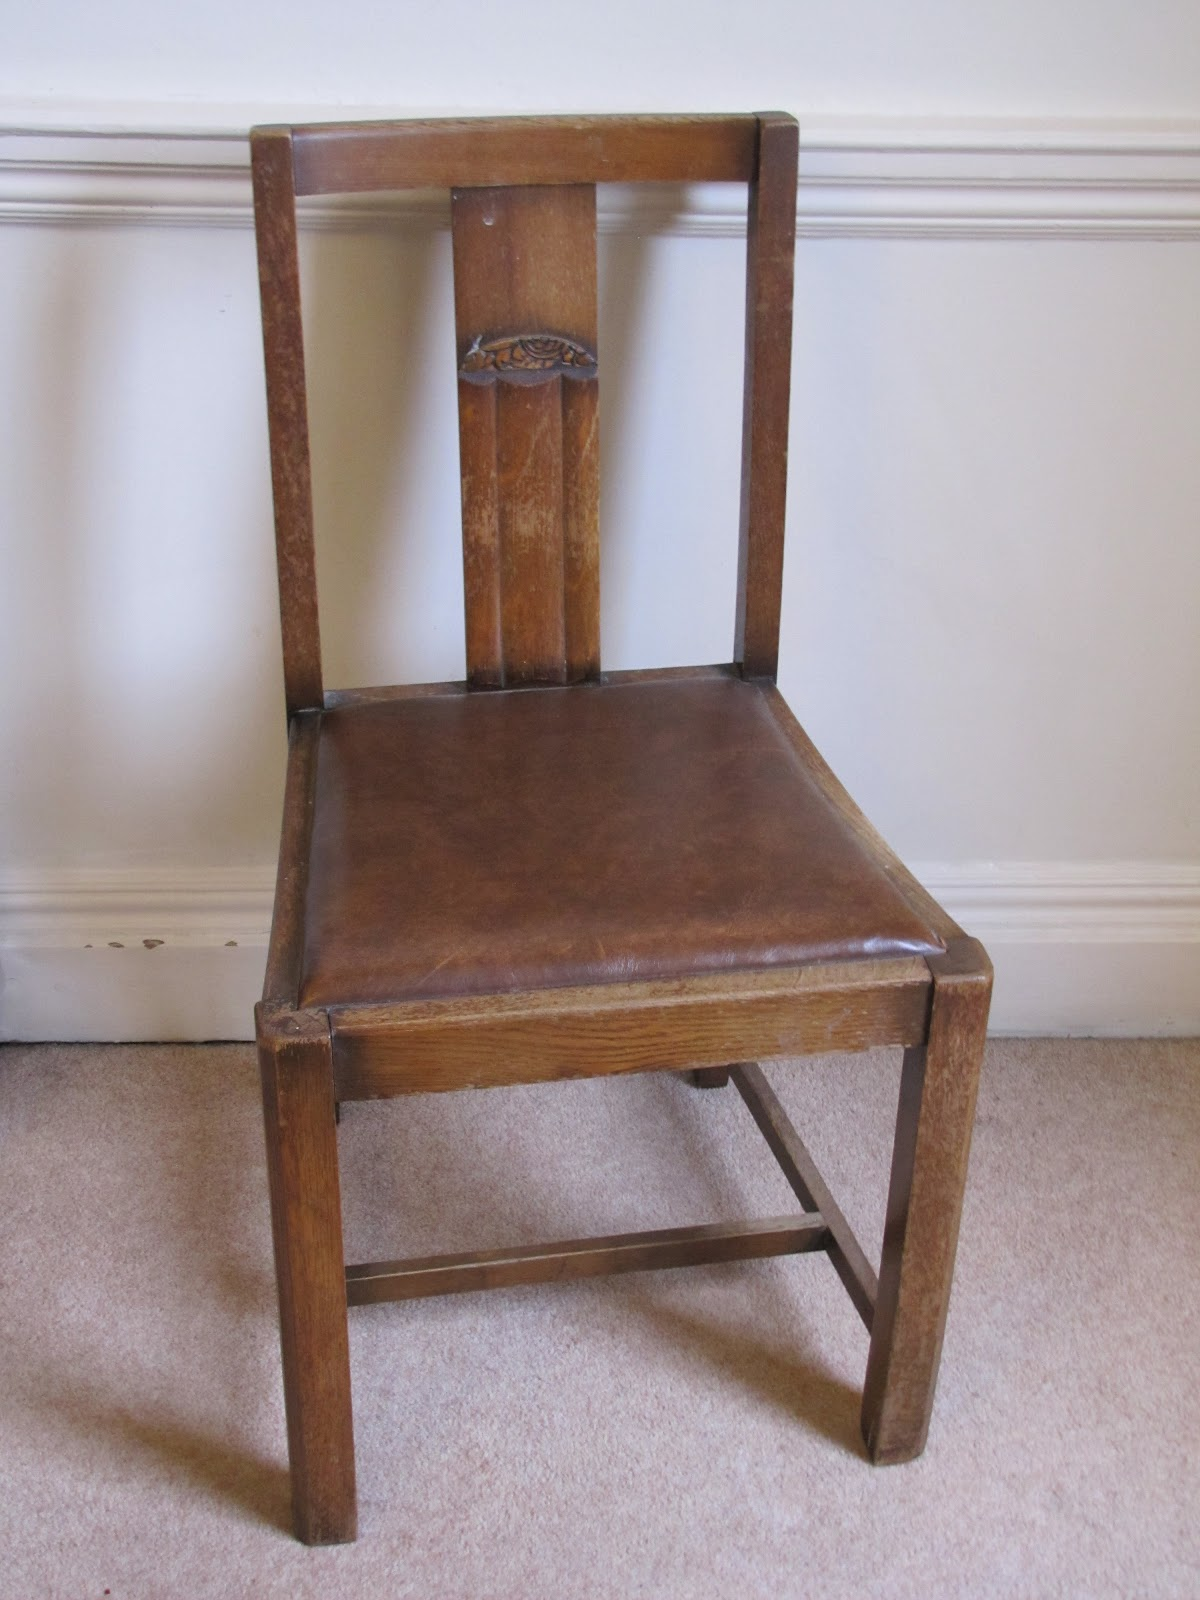 1920s/1930s Vintage Deco Oak Dining Chair In Need Of Recovering And A . Full resolution  image, nominally Width 1200 Height 1600 pixels, image with #694637.